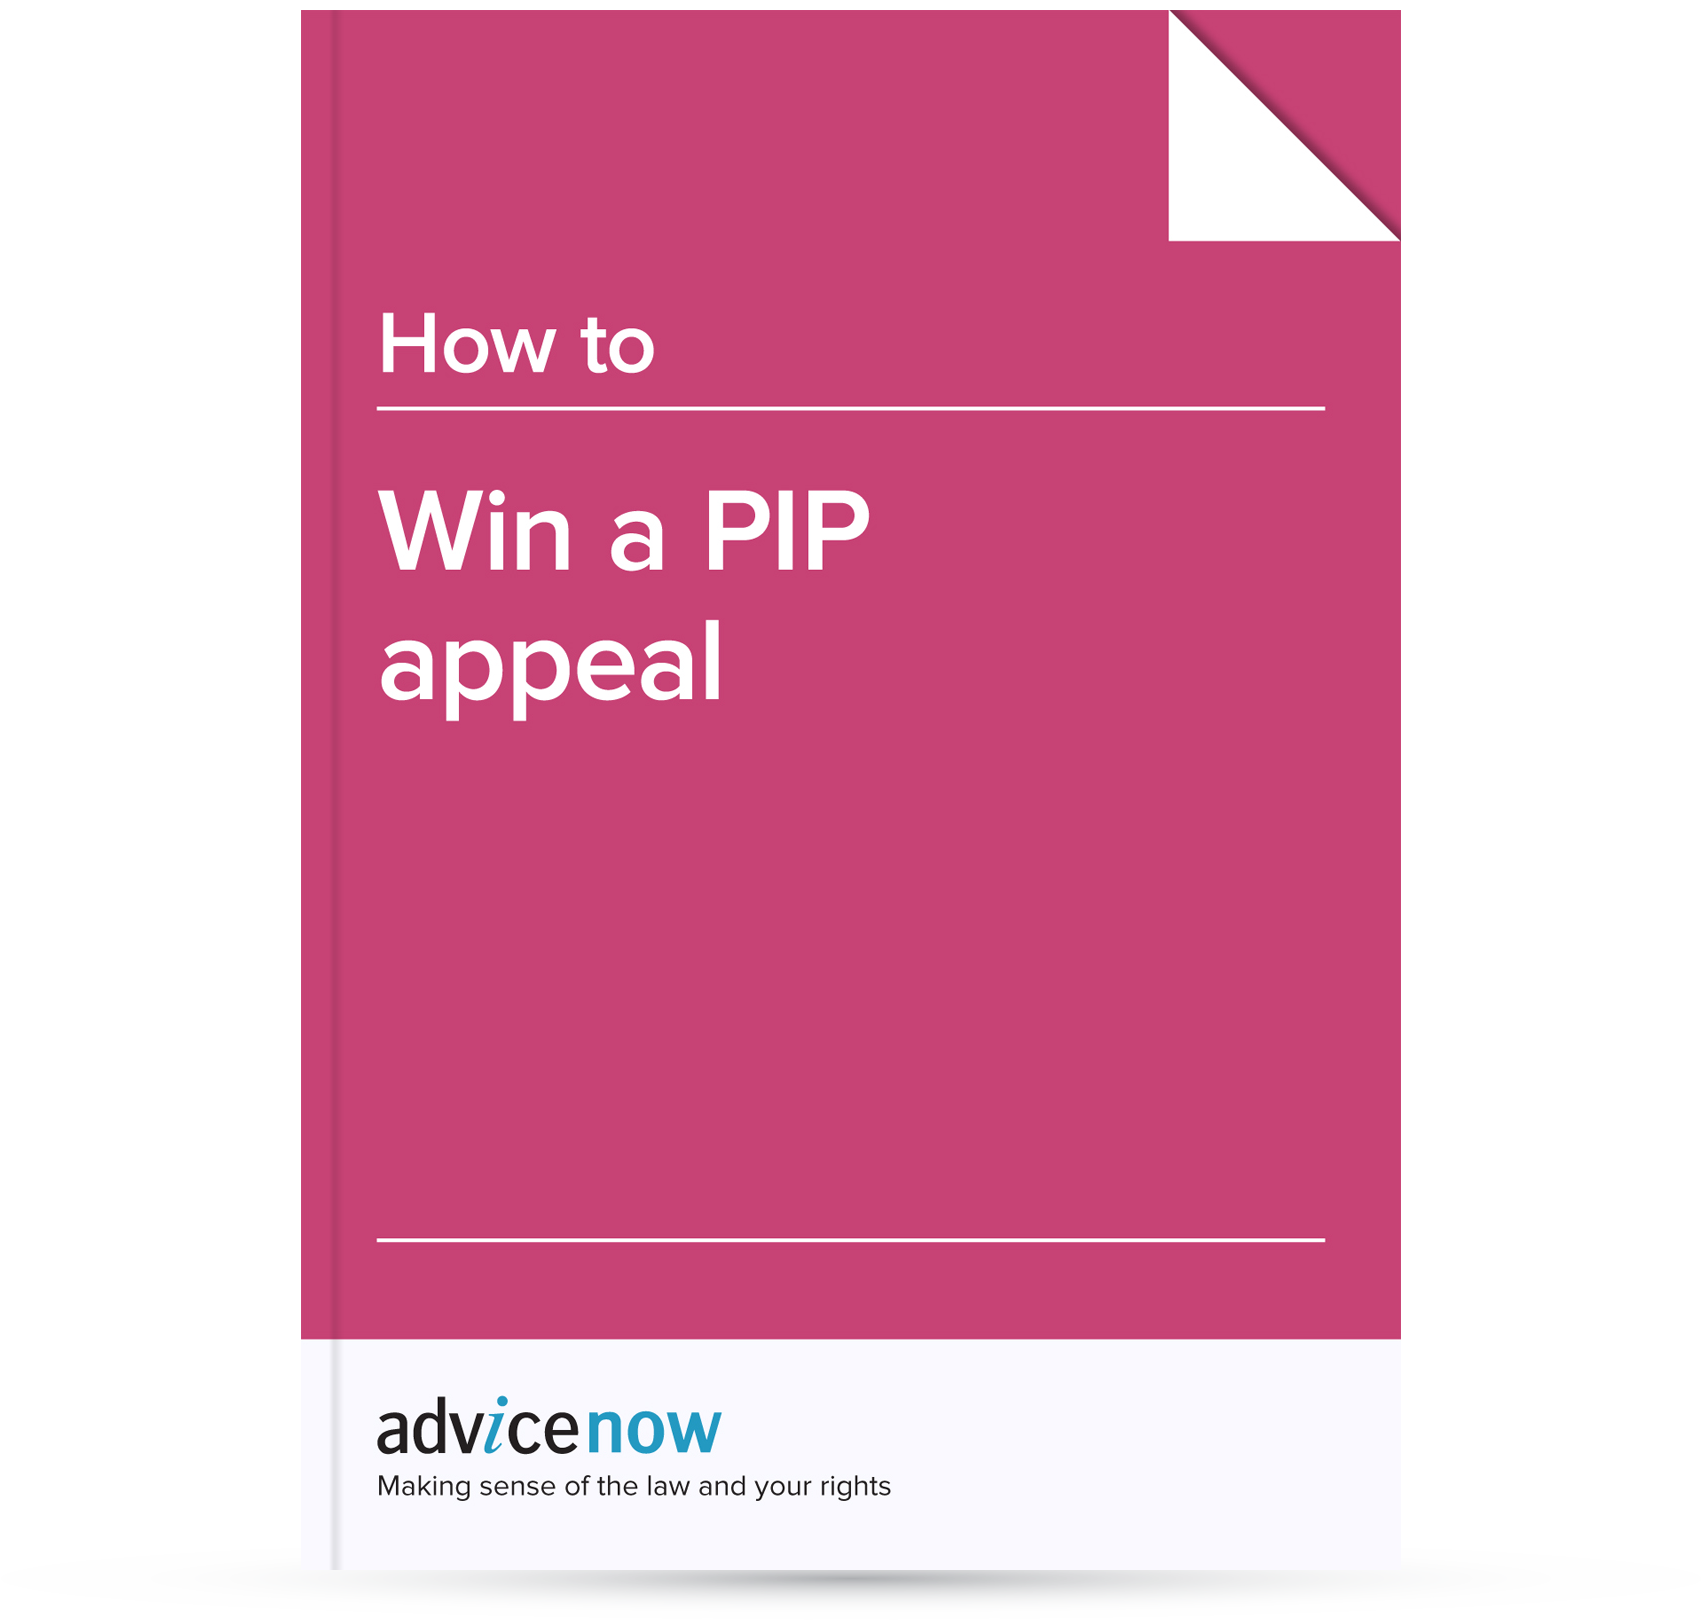 can you claim pip and work